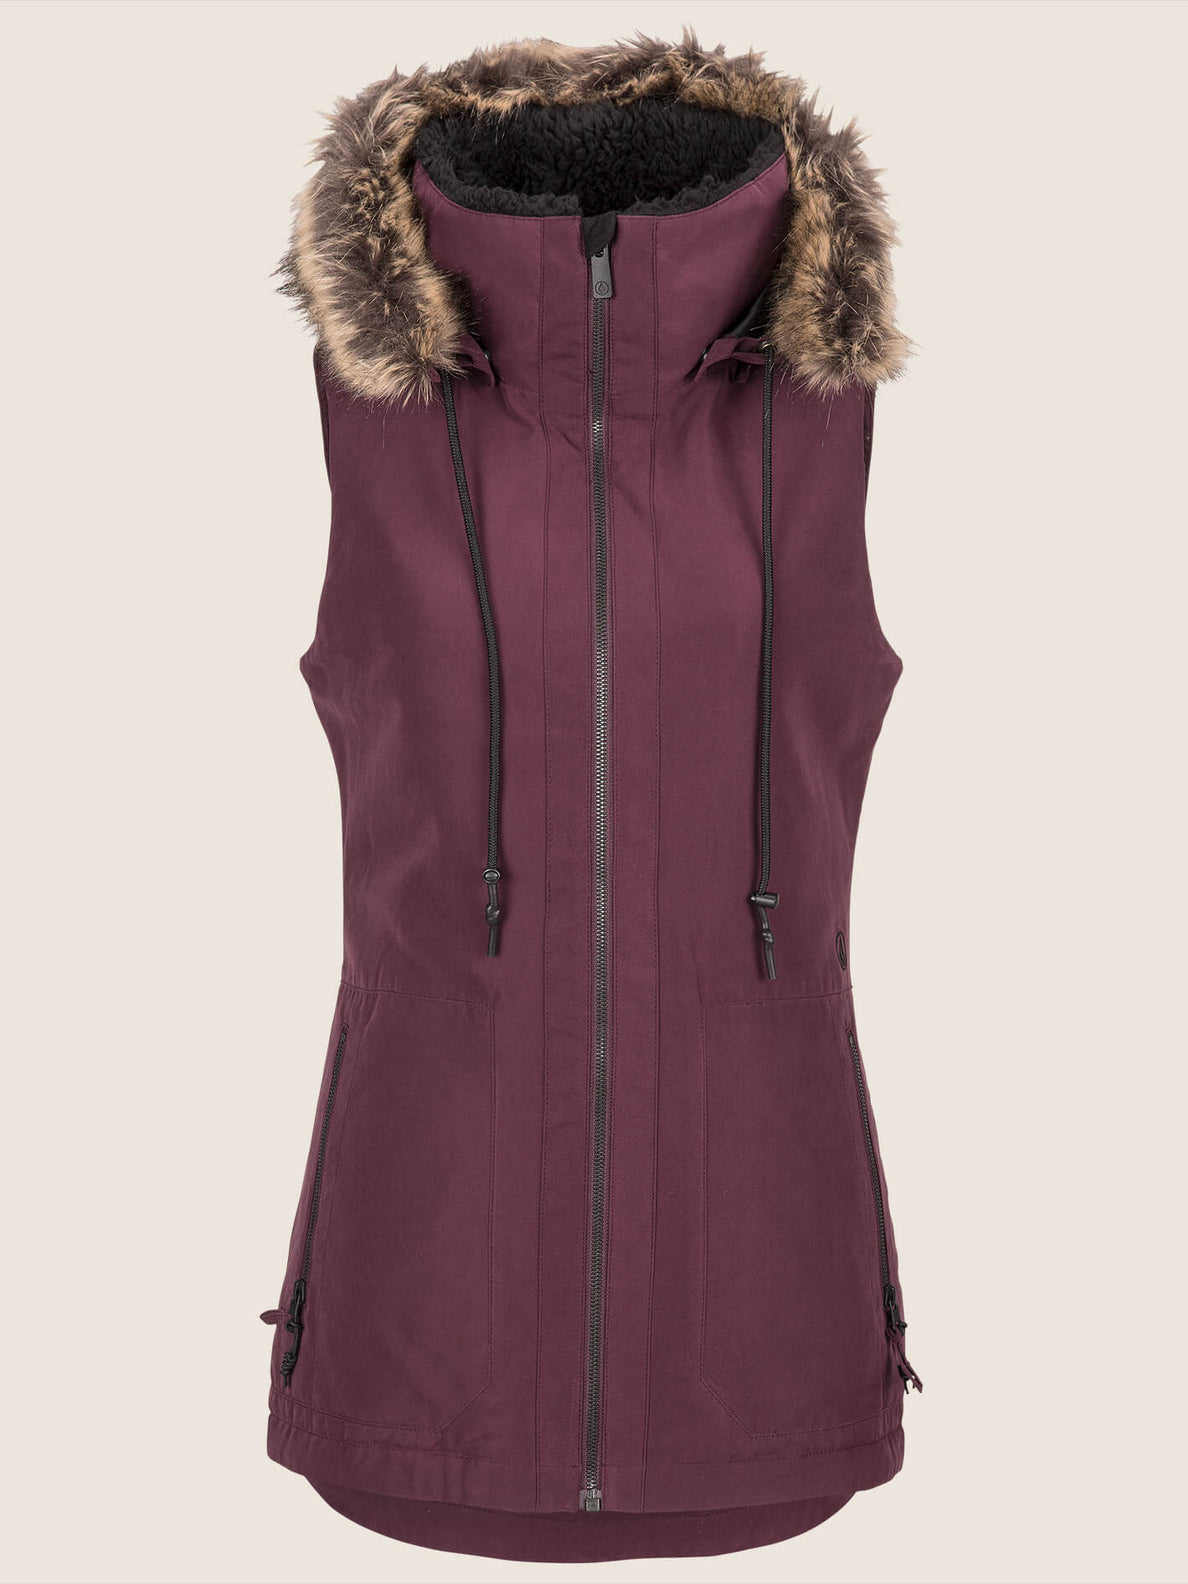 Longhorn Insulated Vest In Merlot, Front View